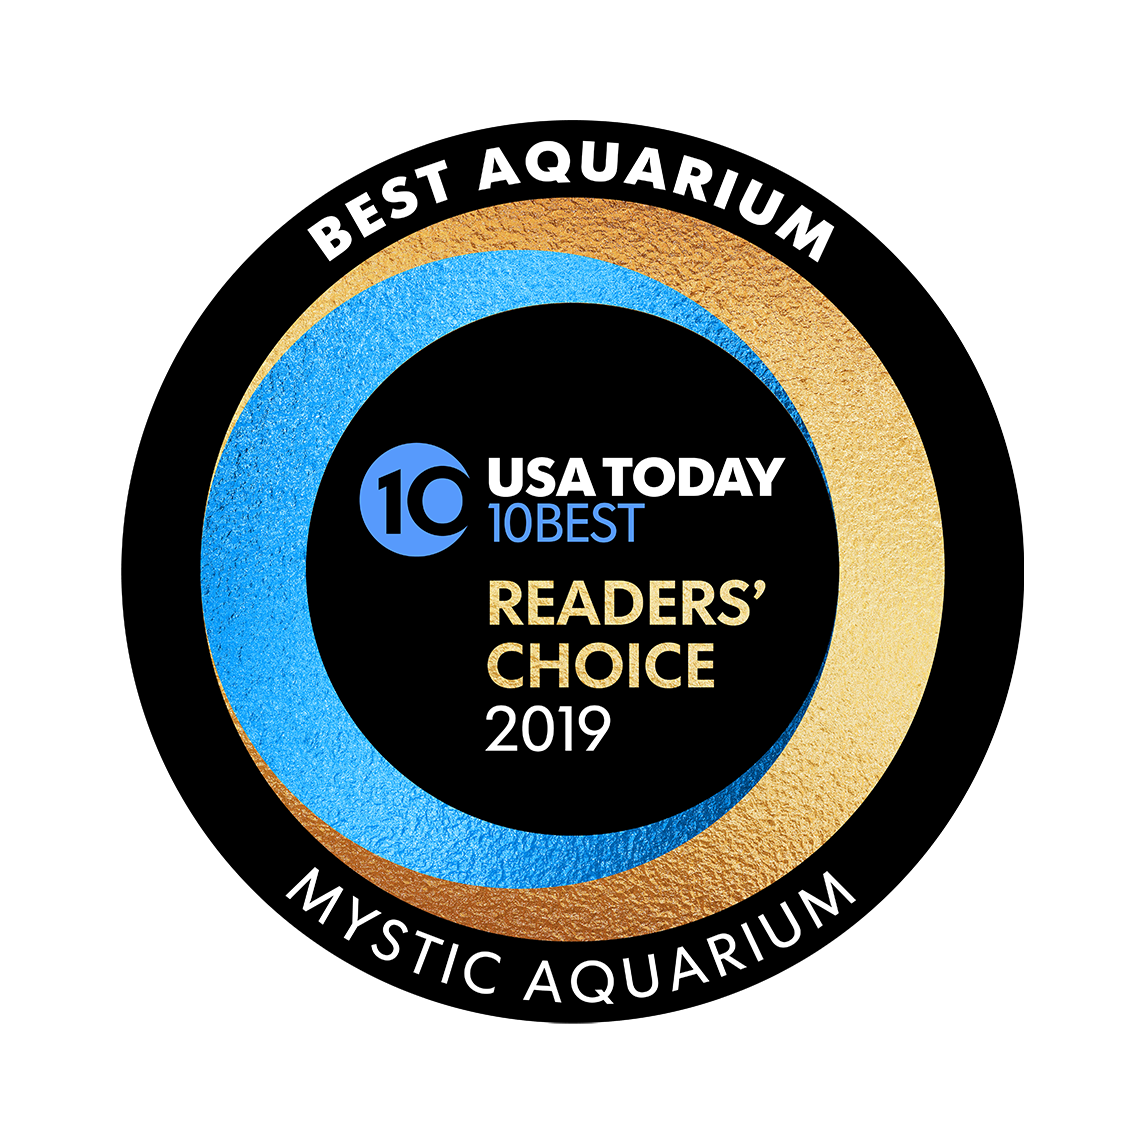 Best Aquarium 2019 badge